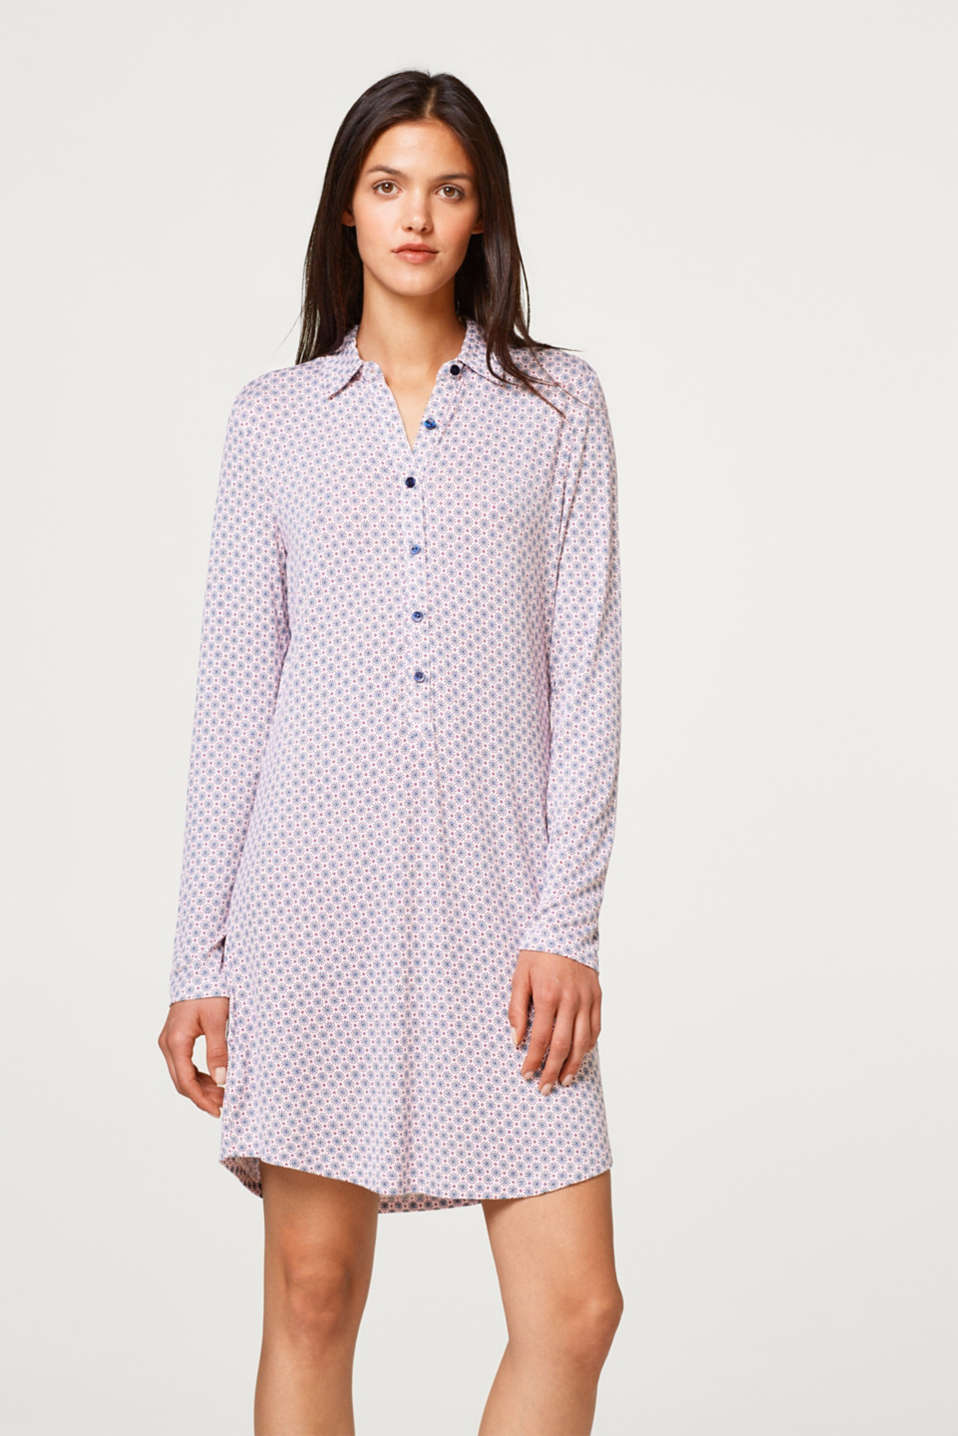 Esprit - Jersey nightshirt with a collar and button placket